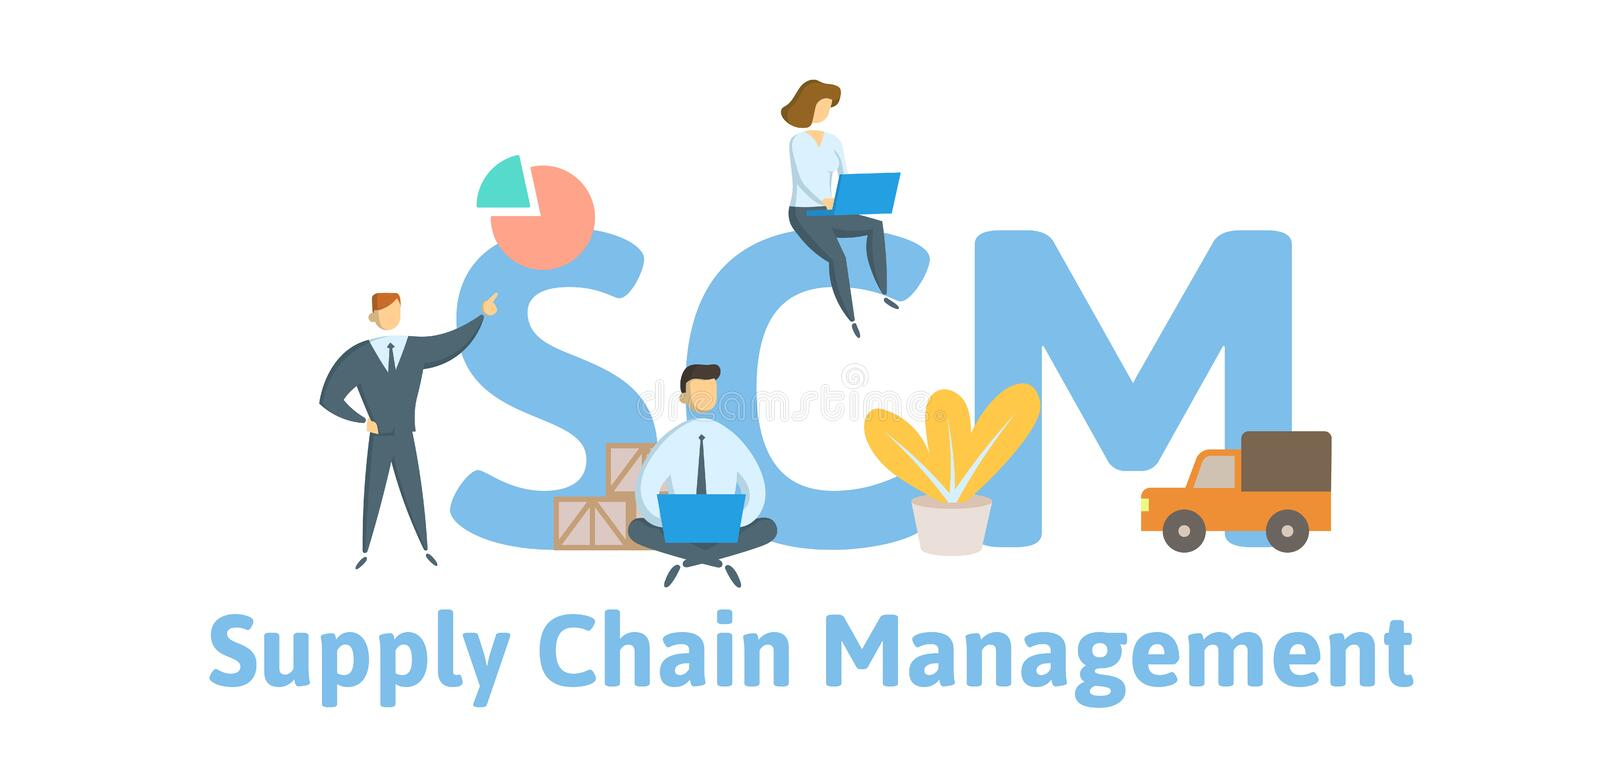 SCM - Supply chain management Concetto con le parole chiavi, le lettere e le icone Illustrazione piana di vettore Isolato su bian royalty illustrazione gratis